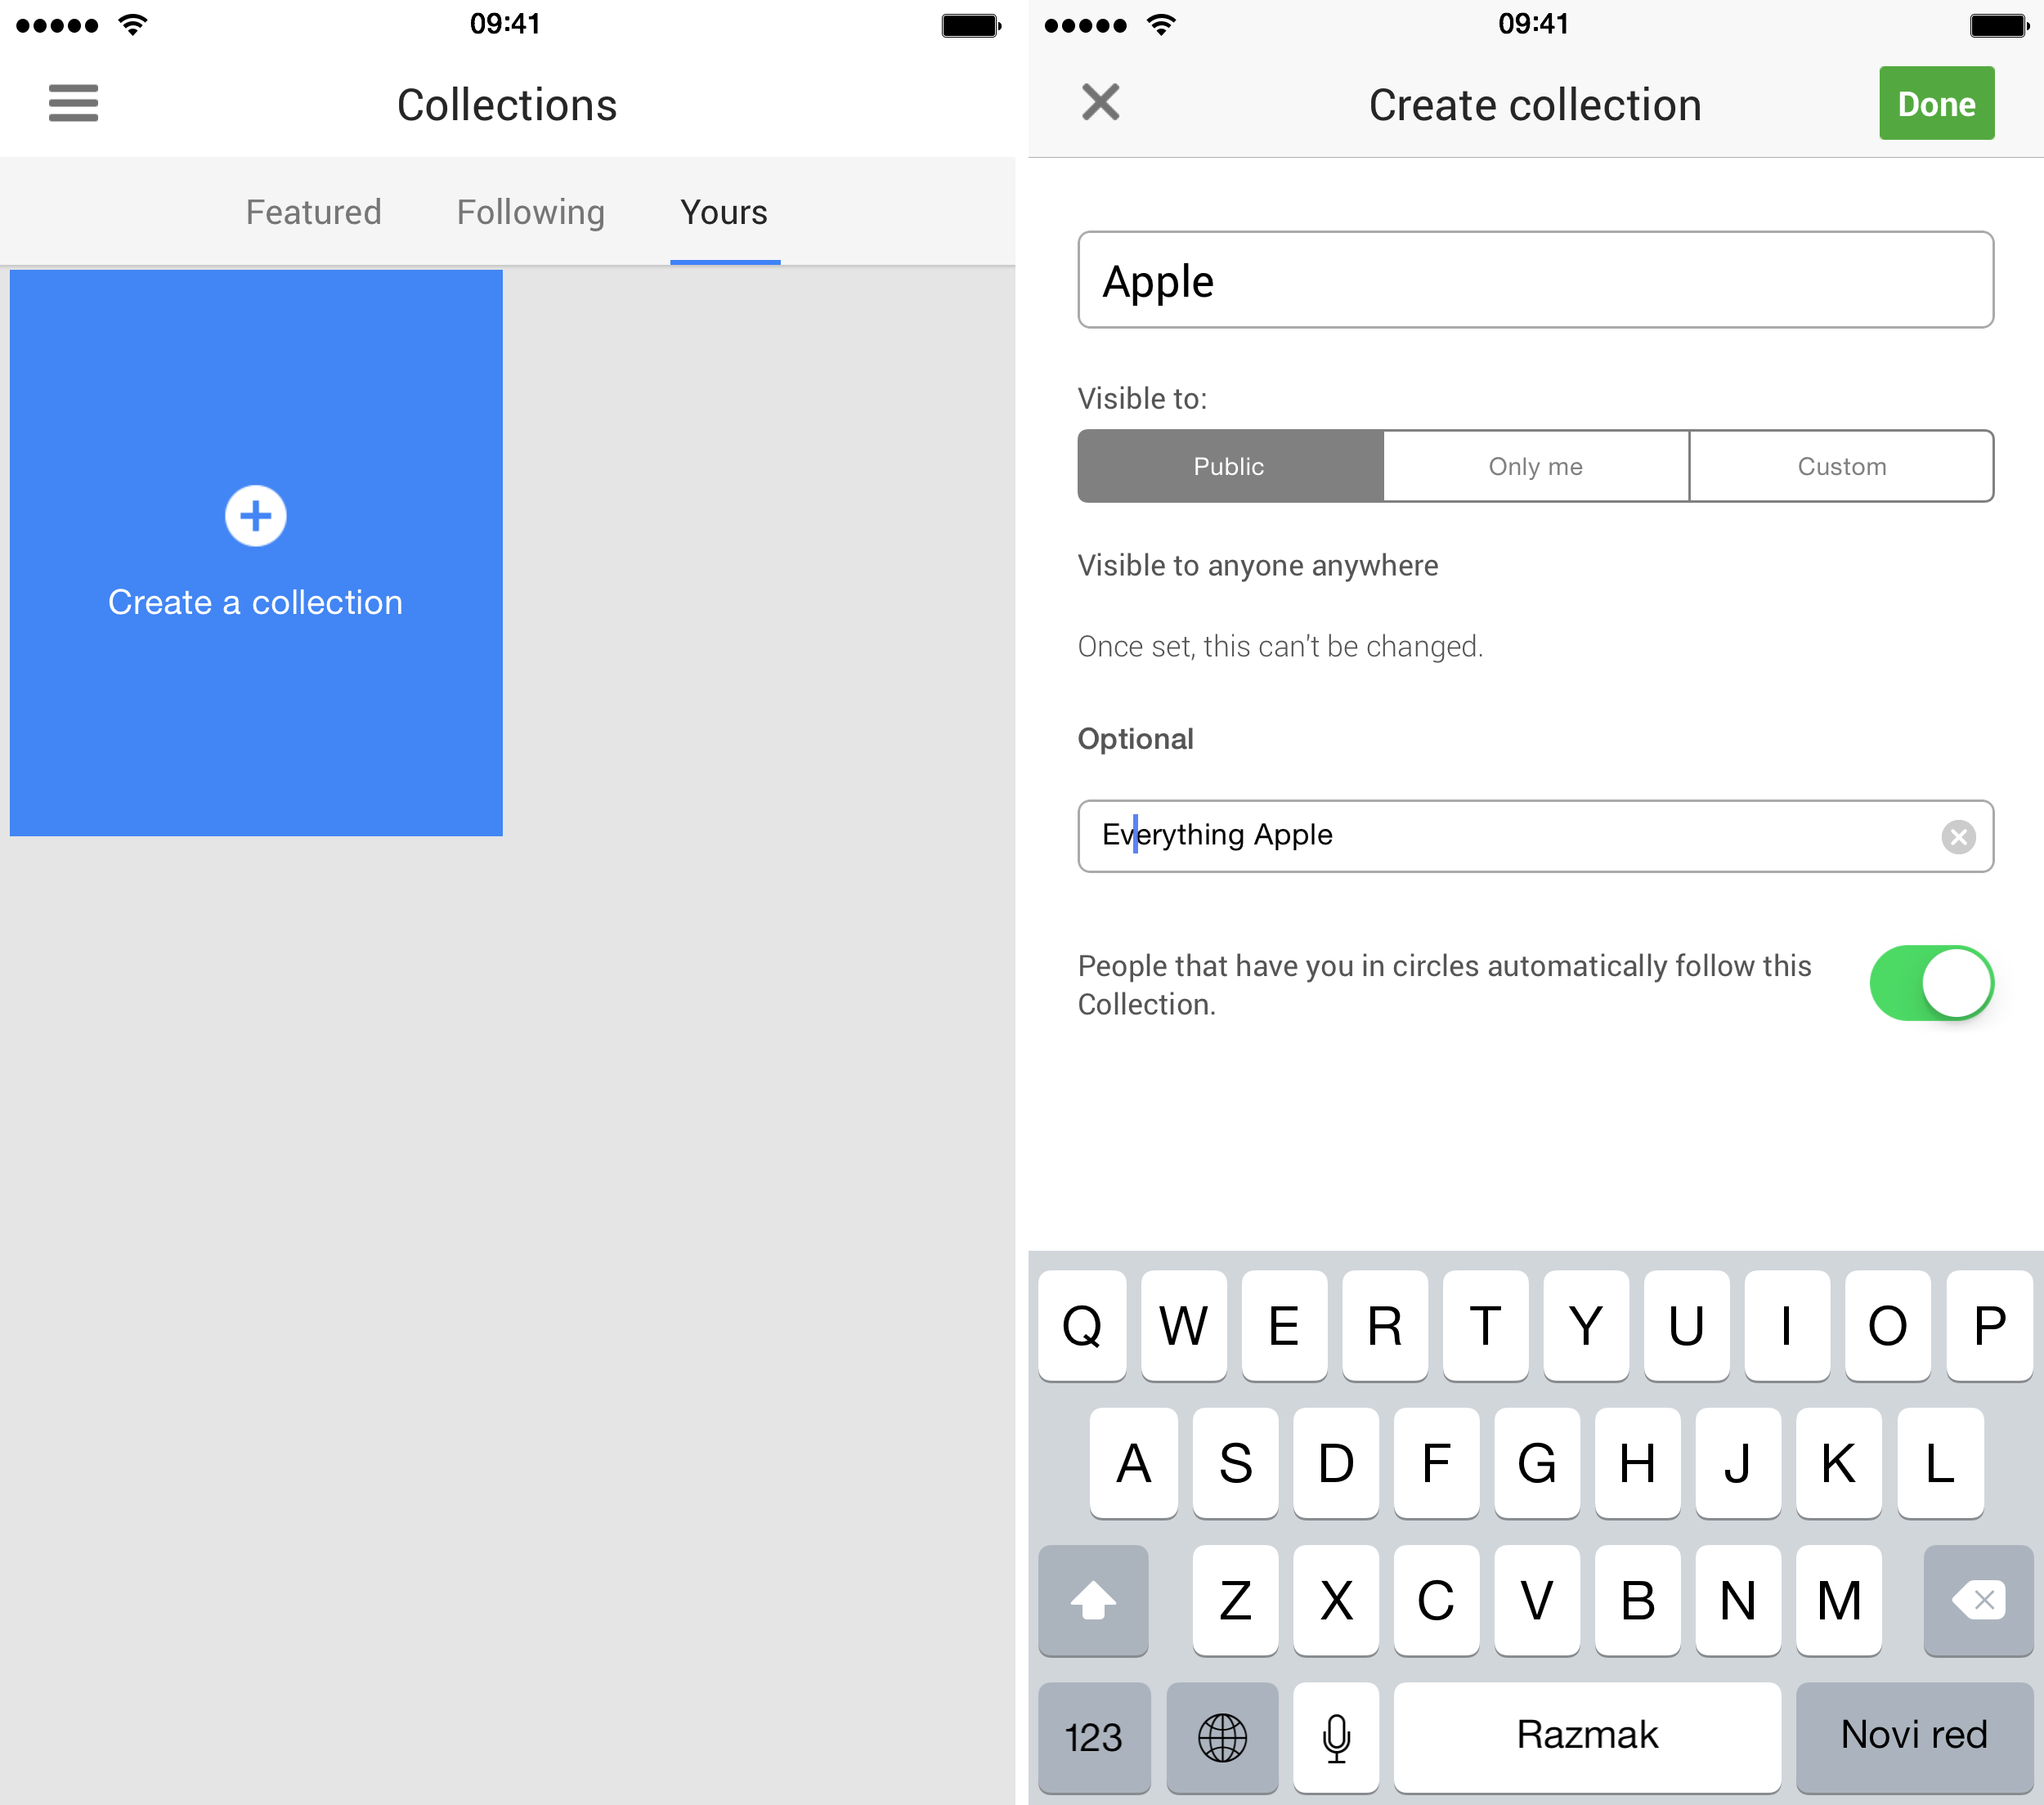 Google Plus 4.8.5 for iOS Collections iPhone screenshot 002